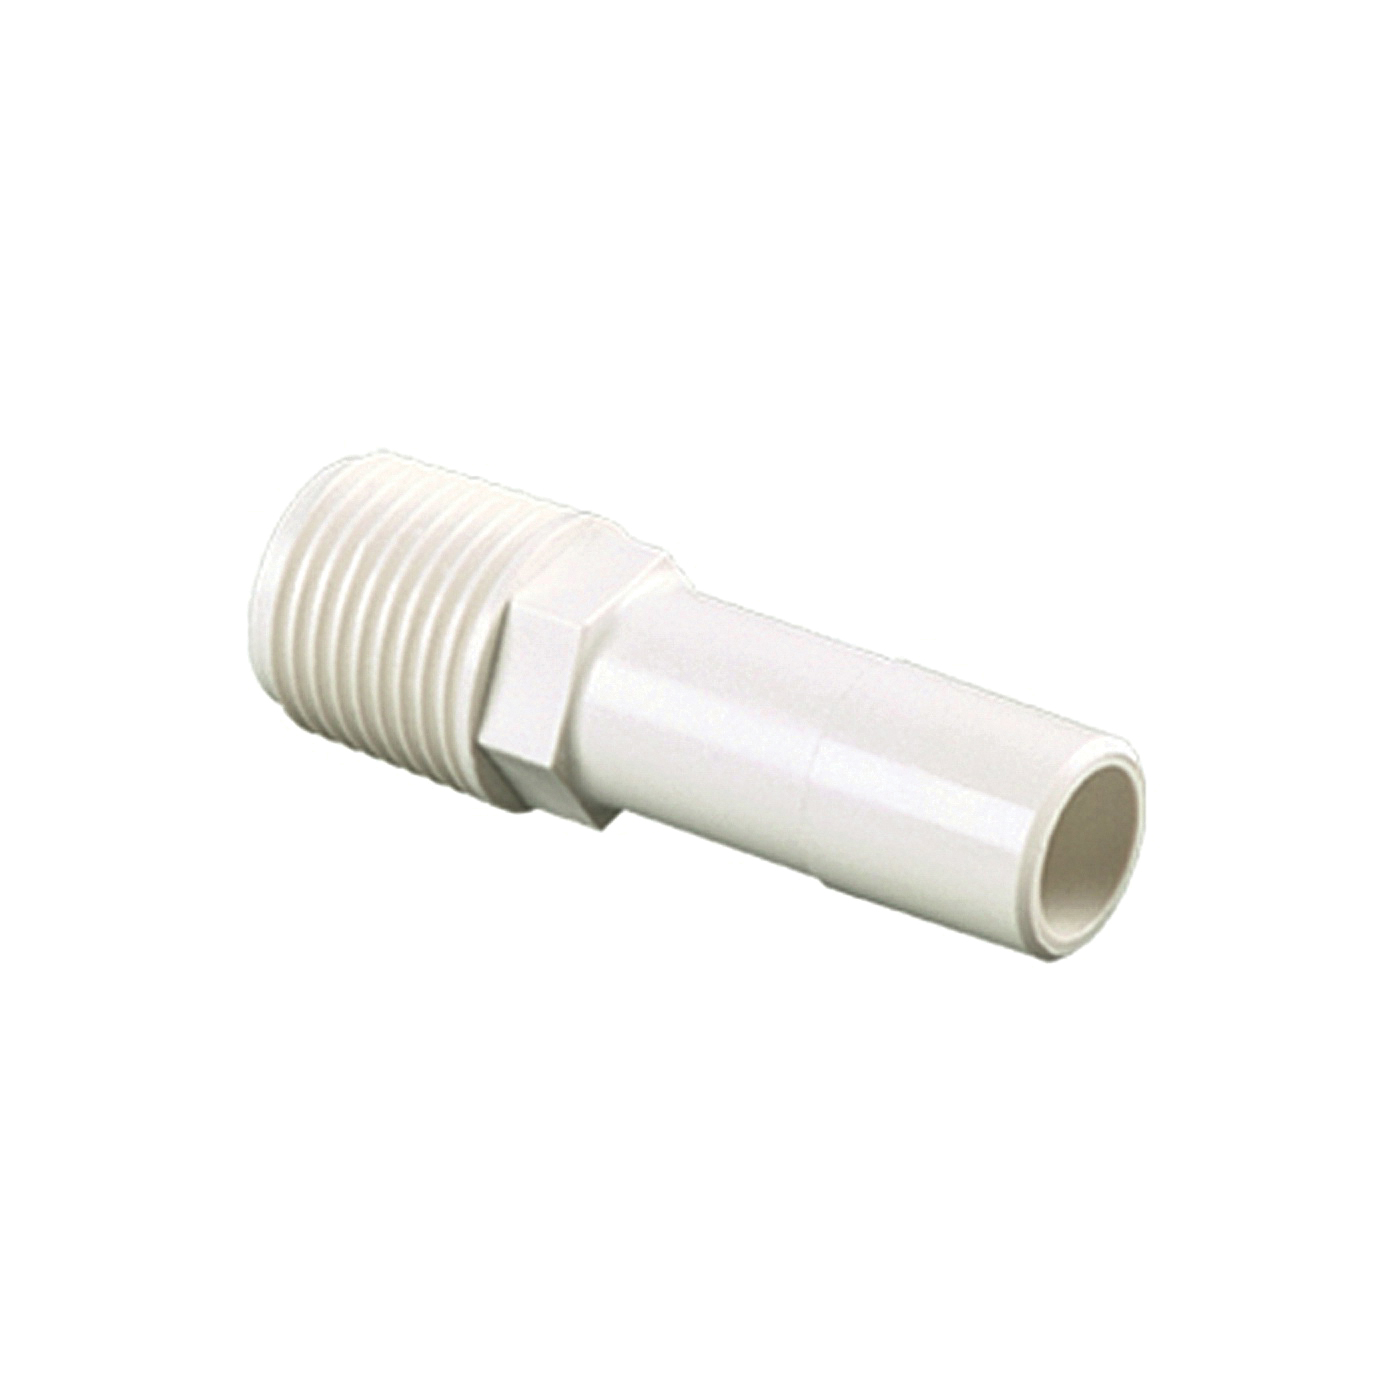 Picture of Watts 35 Series 3527-1008 Stem Connector, 1/2 in CTS, 1/2 in MPT, Off-White